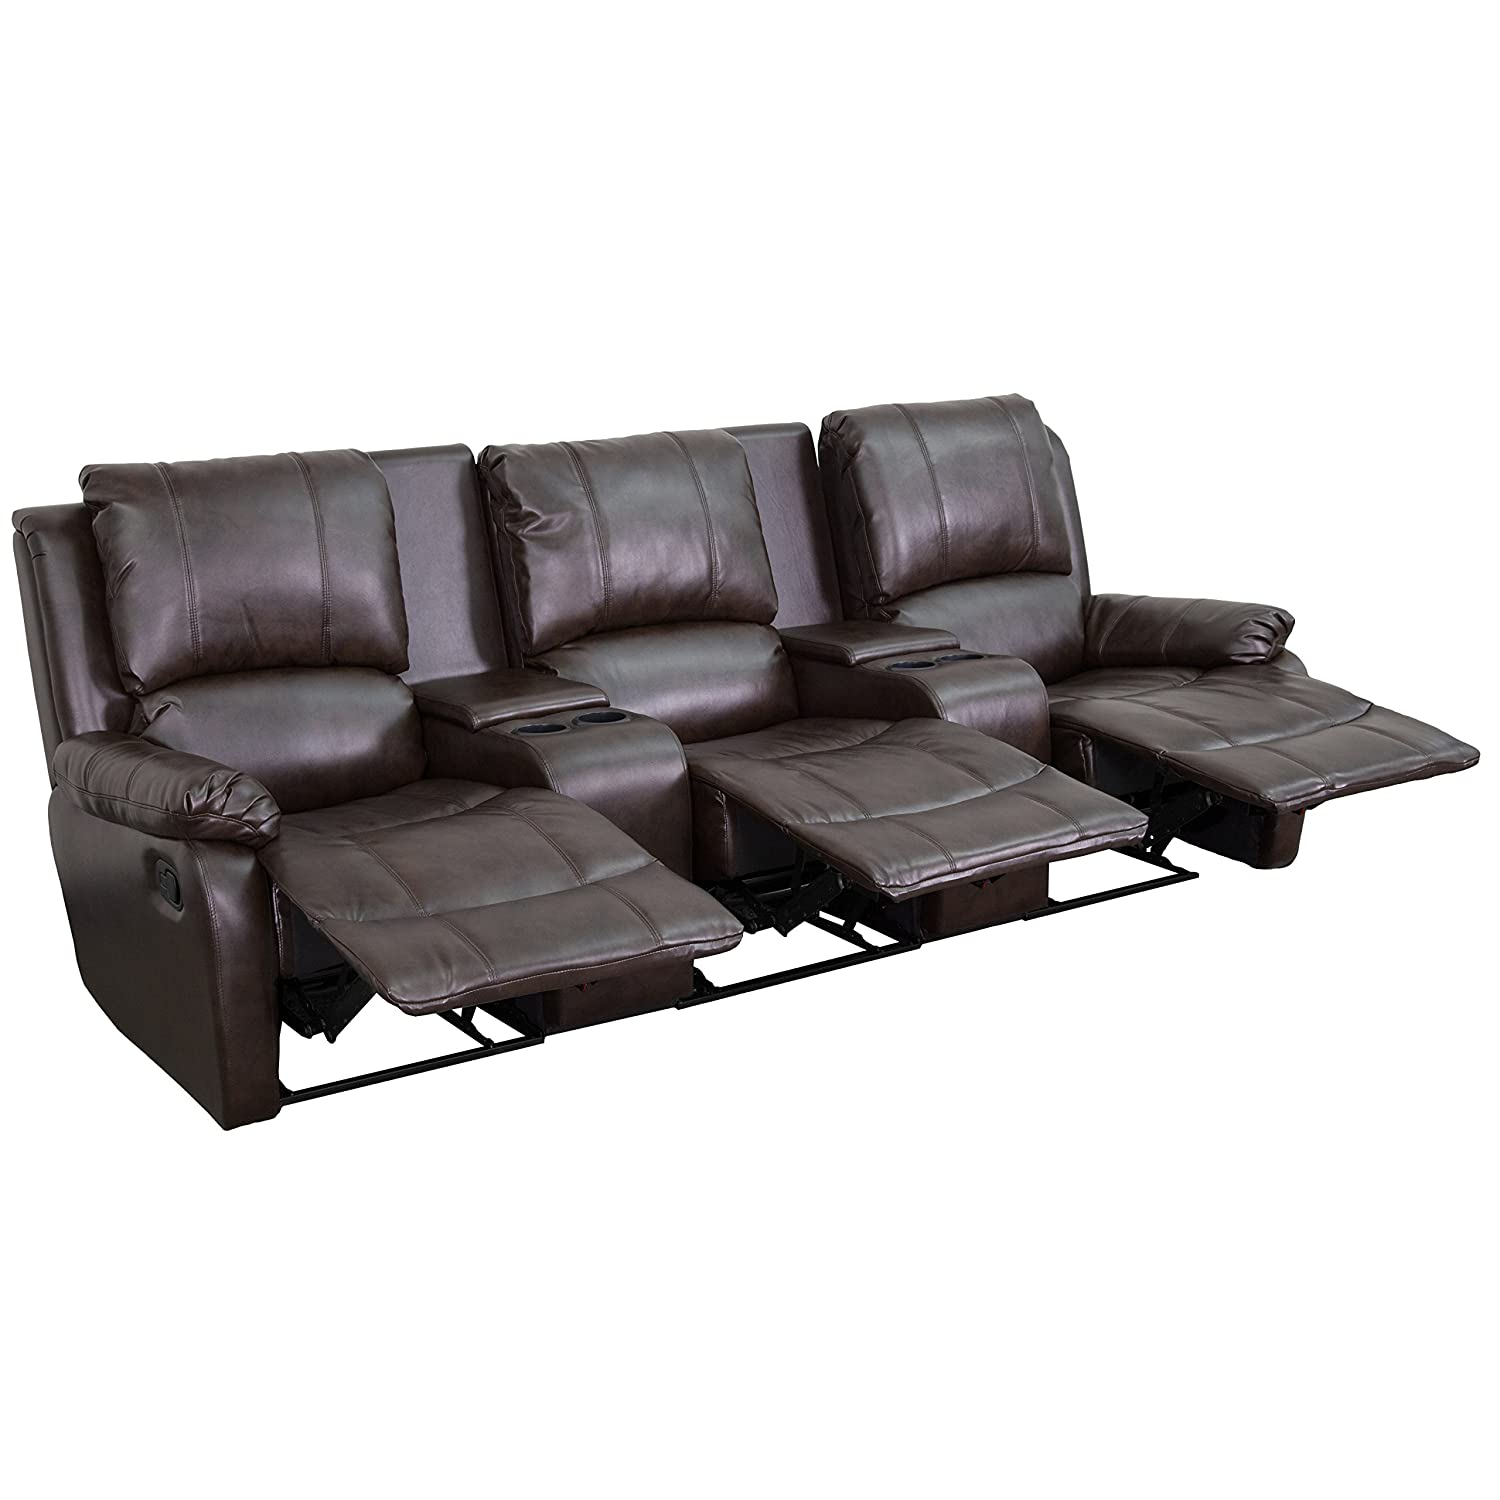 Amazon.com Flash Furniture Allure Series 3-Seat Reclining Pillow Back Black Leather Theater Seating Unit with Cup Holders Kitchen u0026 Dining  sc 1 st  Amazon.com & Amazon.com: Flash Furniture Allure Series 3-Seat Reclining Pillow ... islam-shia.org